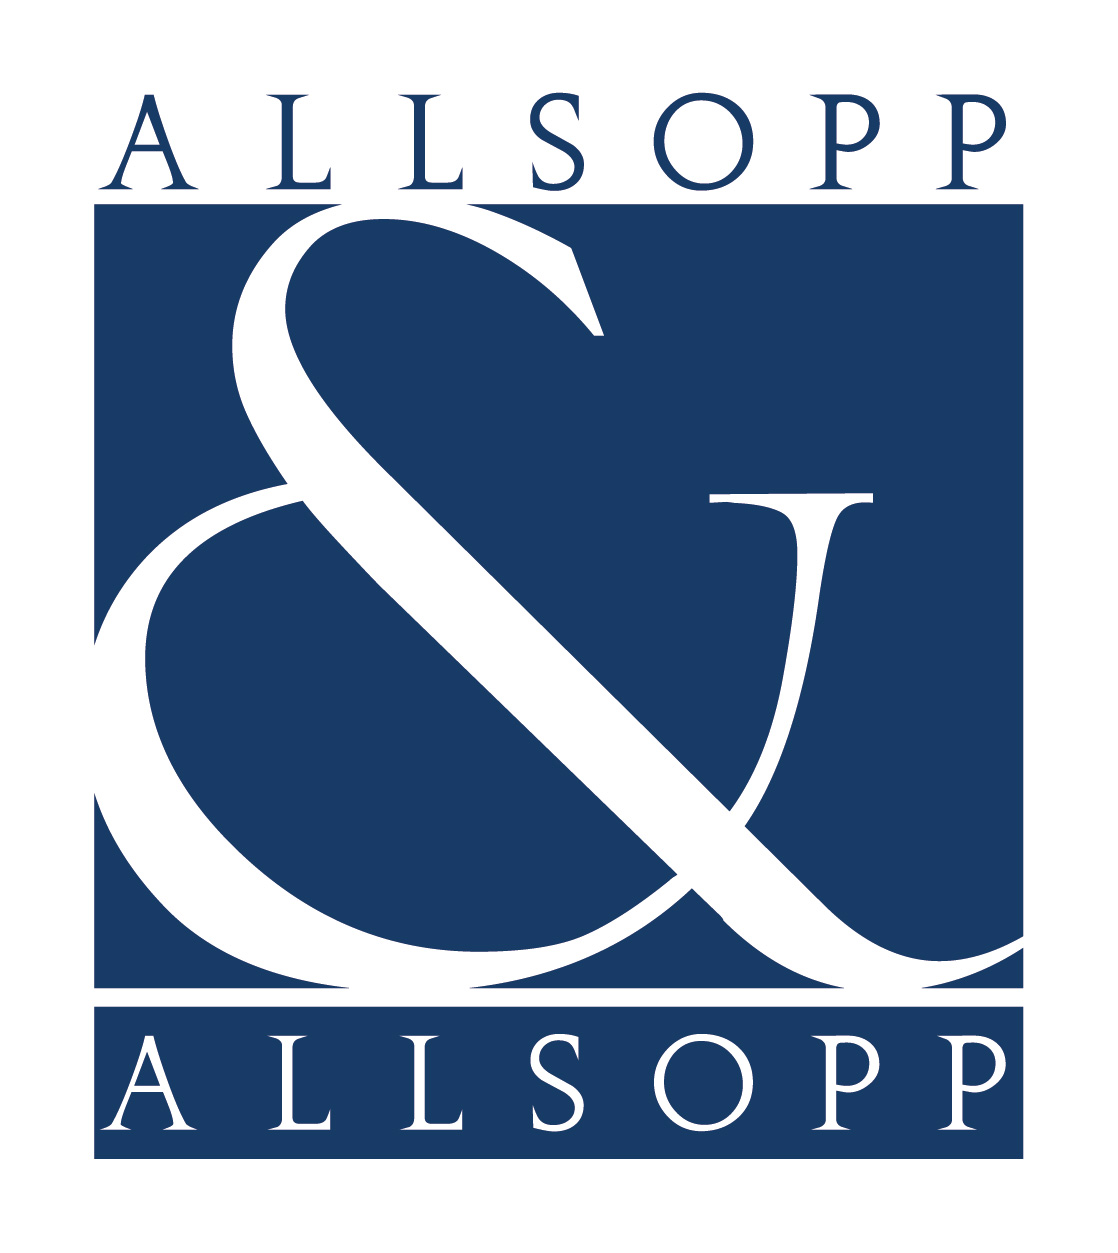 Read Allsopp & Allsopp Reviews